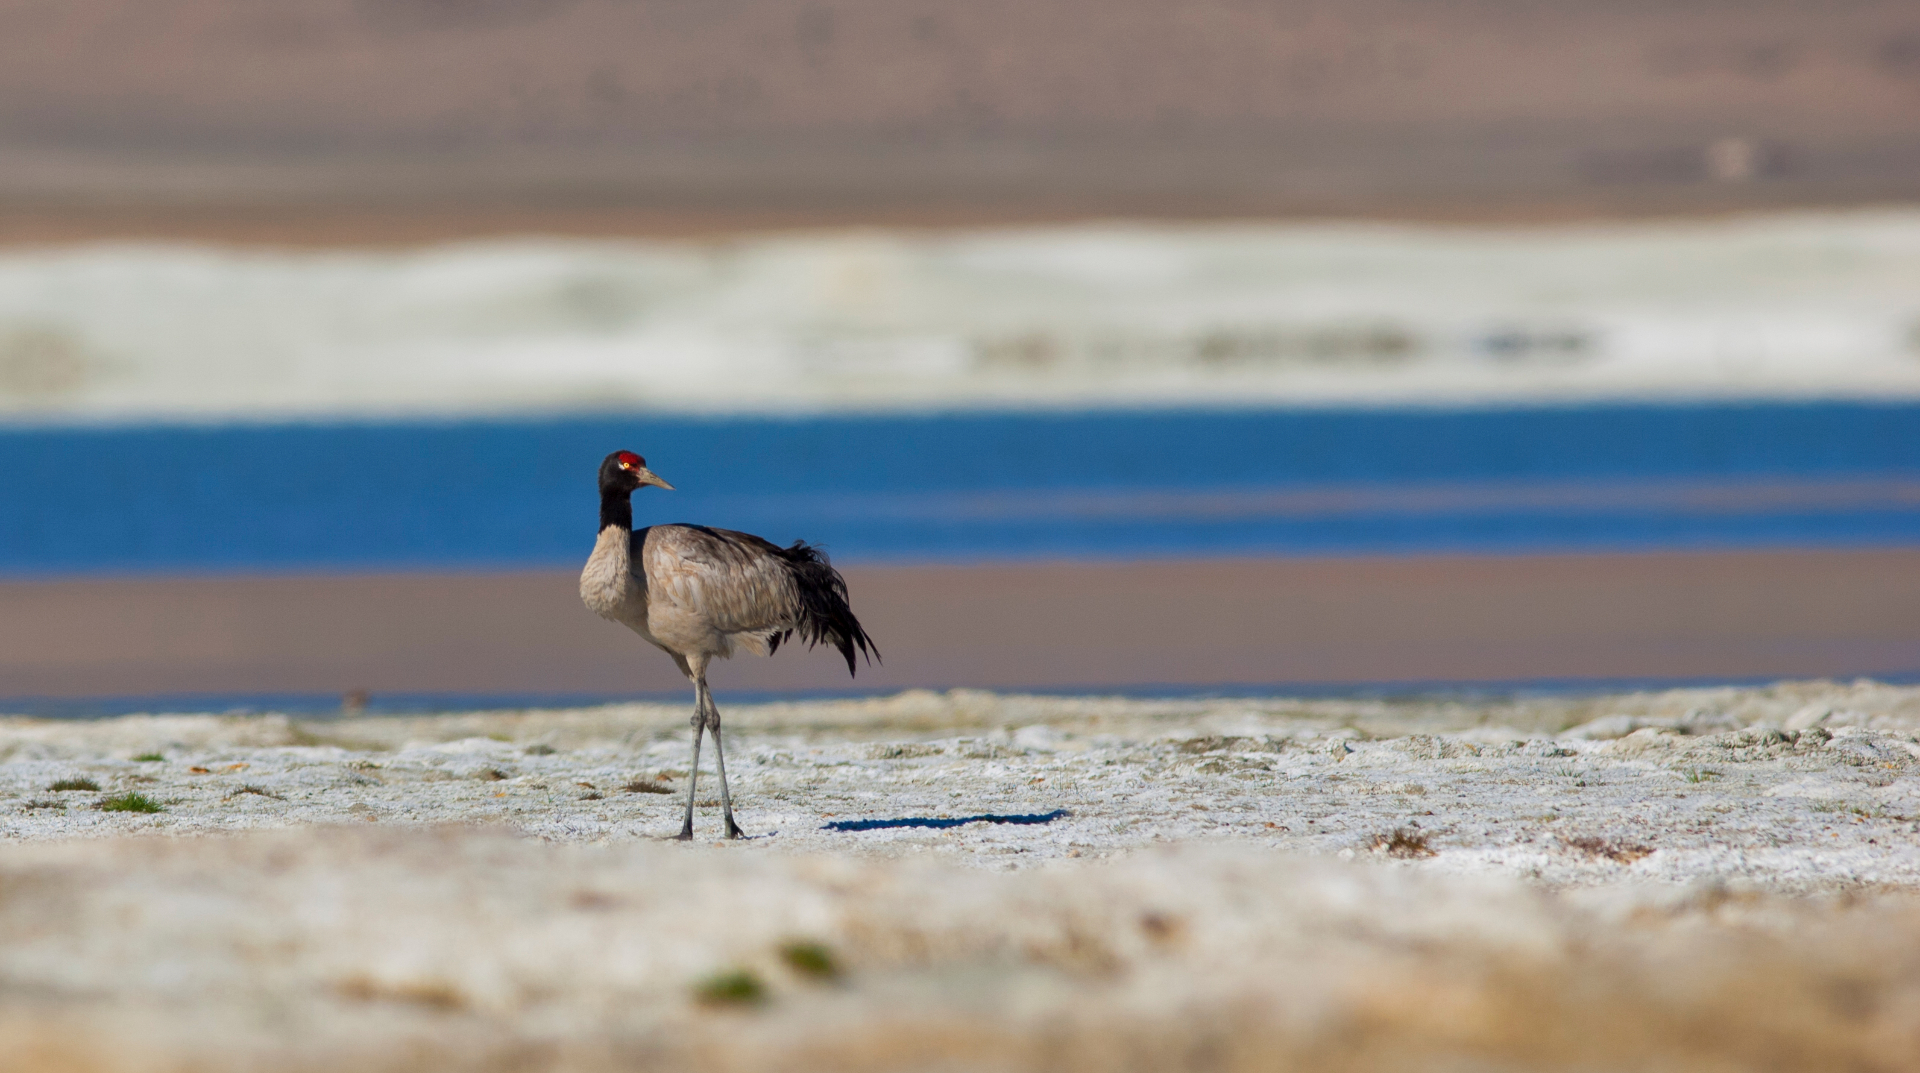 Tso Kar, a saline high-altitude lake, is the only known substantial breeding ground for the black-necked crane in India.  Tibetan sandgrouses (bottom) are large birds, with small pigeon-like heads, that forage in flocks on the ground. They are rarely found anywhere else in Asia, outside of Ladakh.